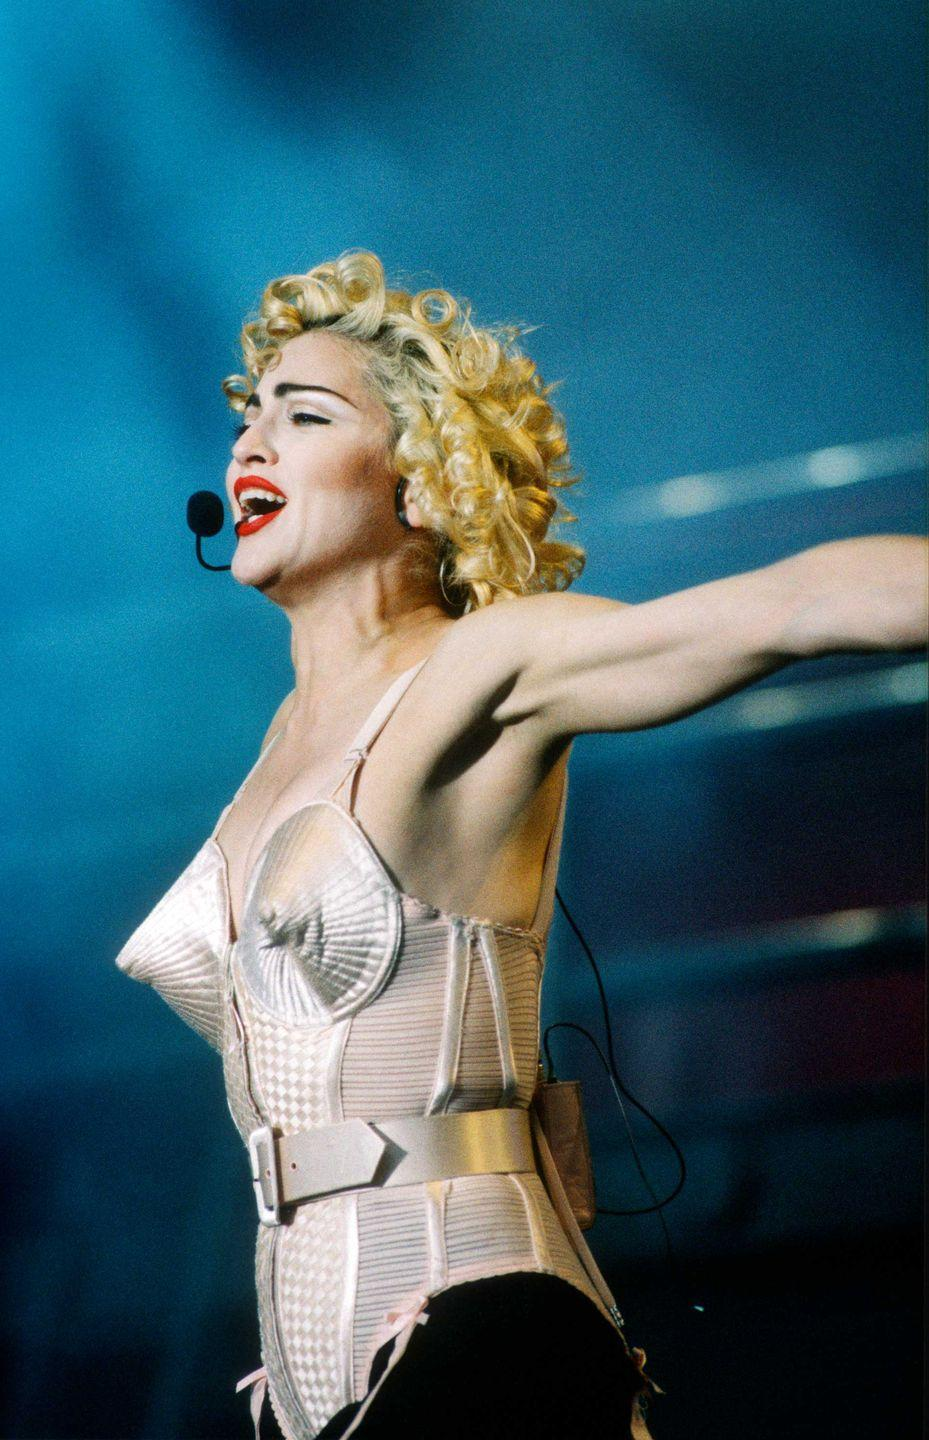 <p>Wearing a Jean Paul Gaultier conical bra corset, the Queen of Pop Madonna sings her heart out on her Blonde Ambition Tour in 1990. </p>